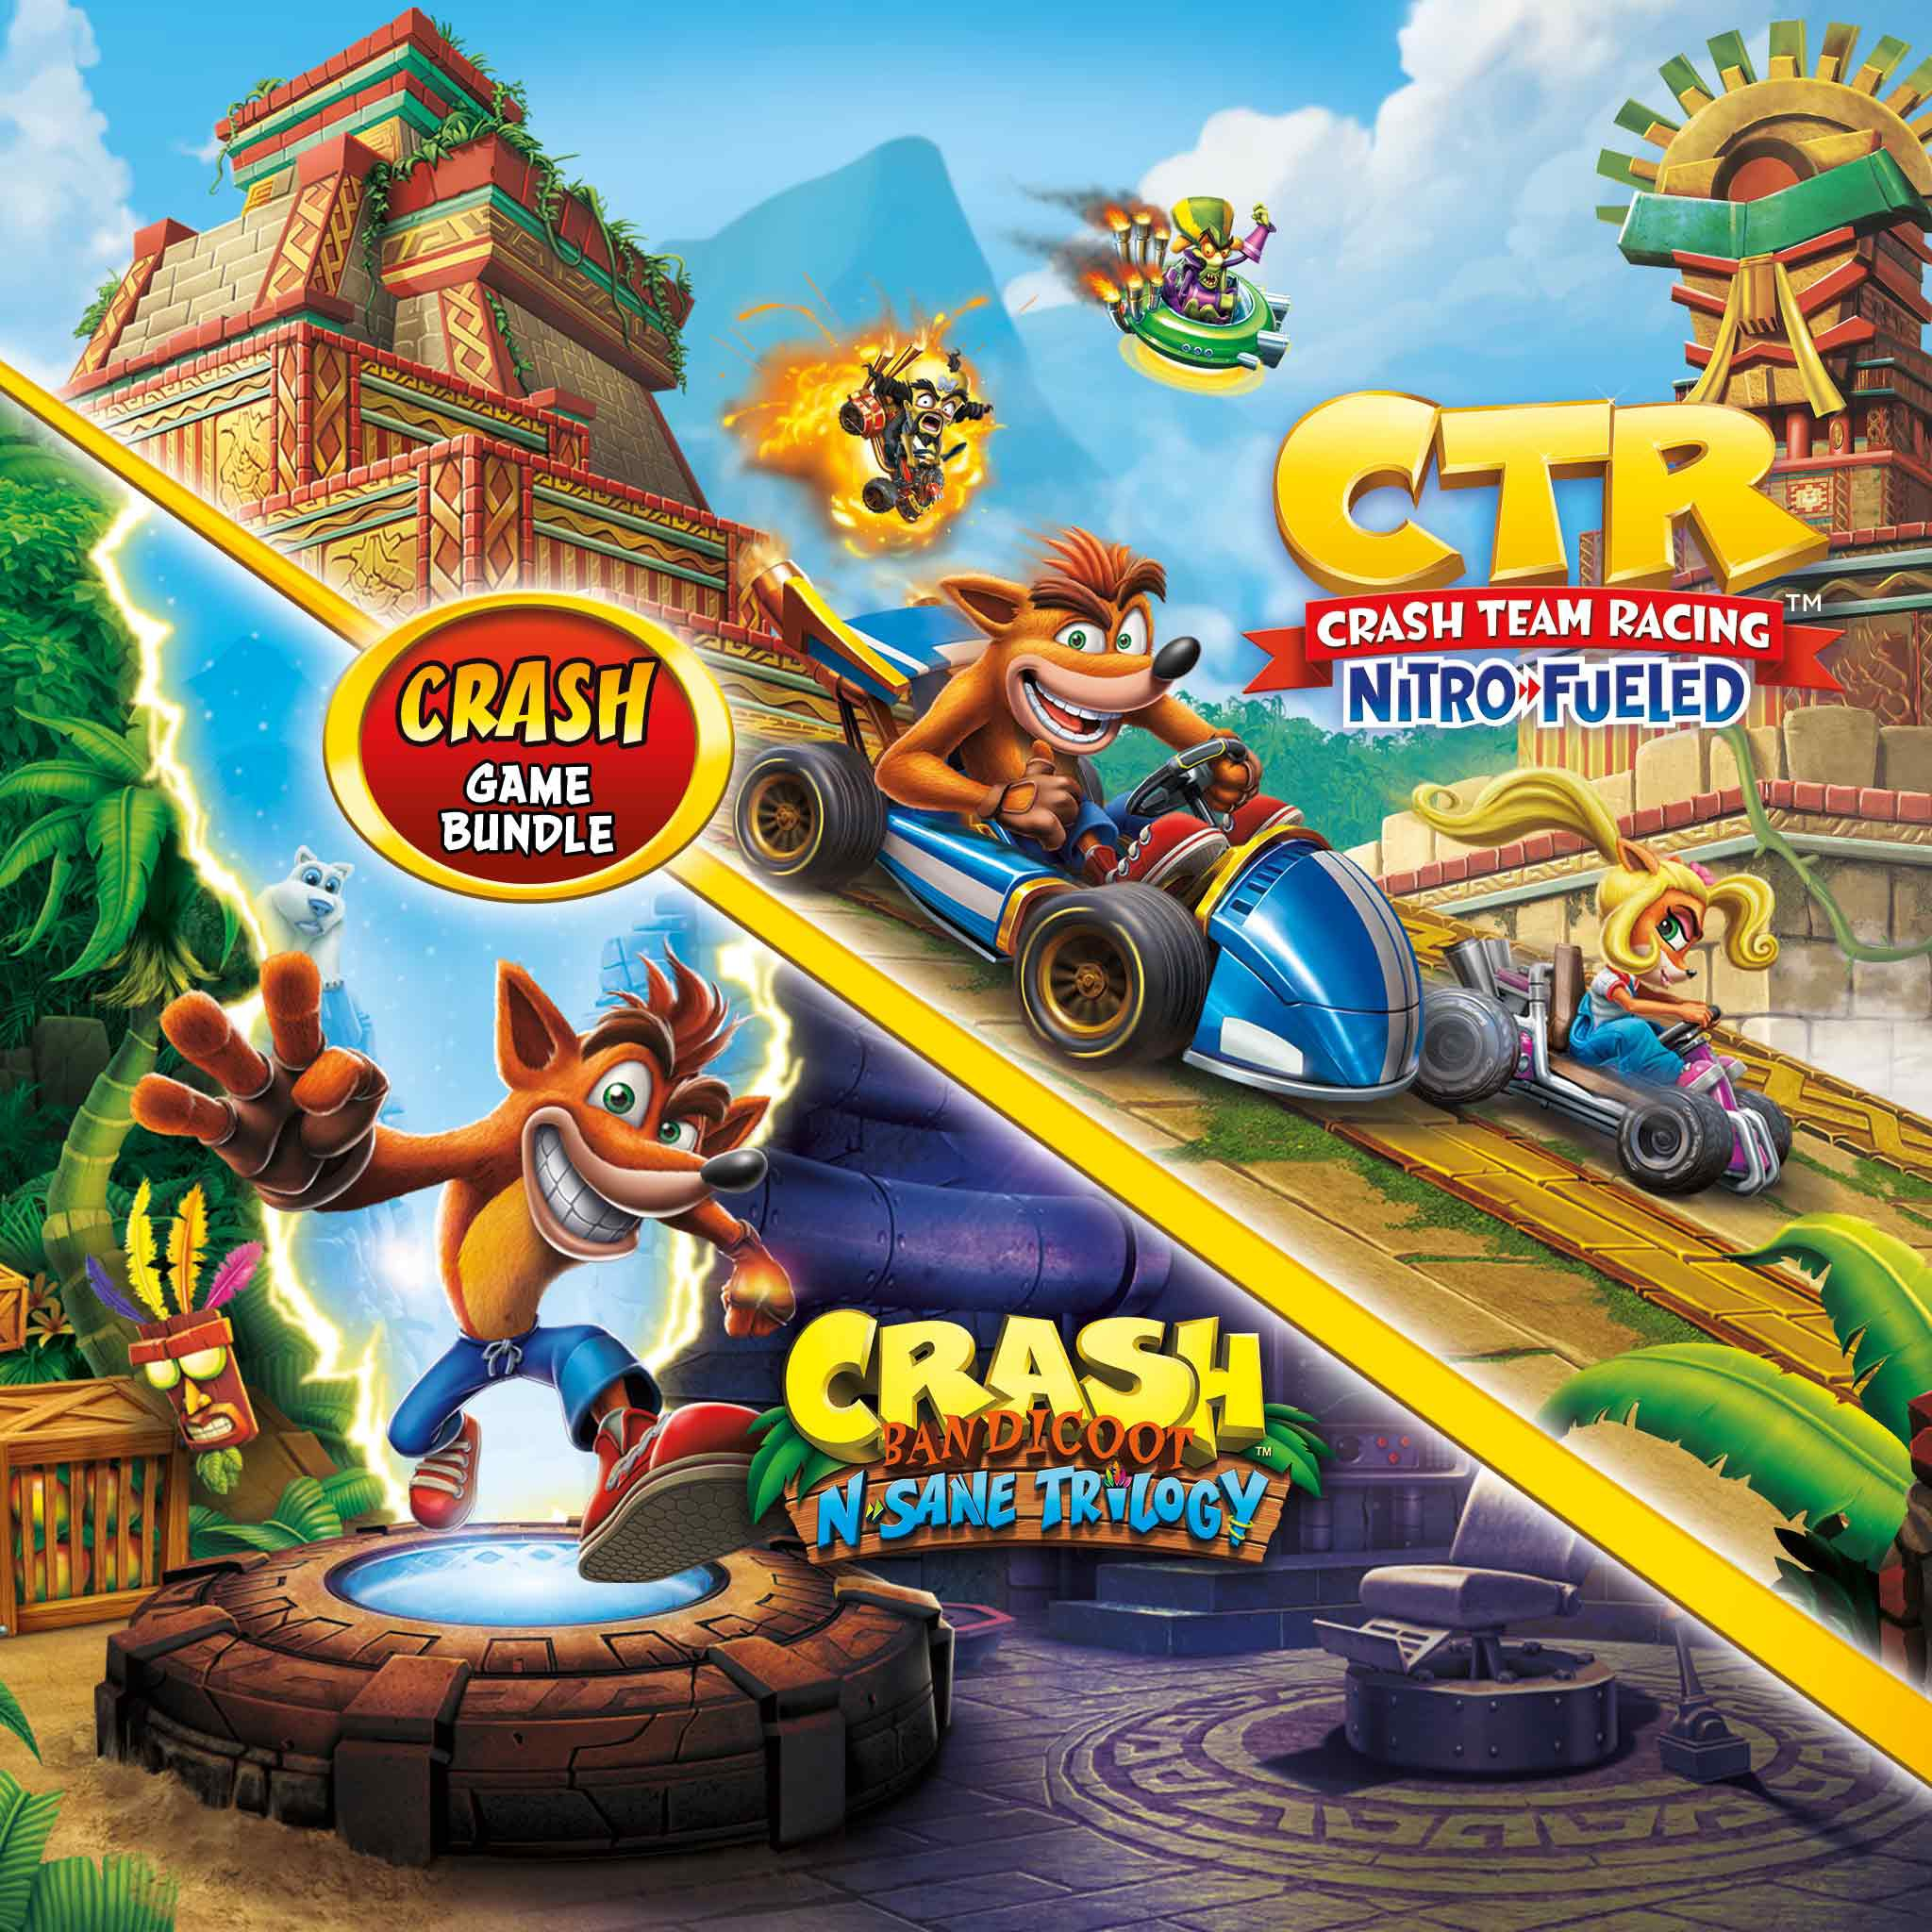 Crash Bandicoot™-Paket: N. Sane Trilogy + CTR Nitro-Fueled